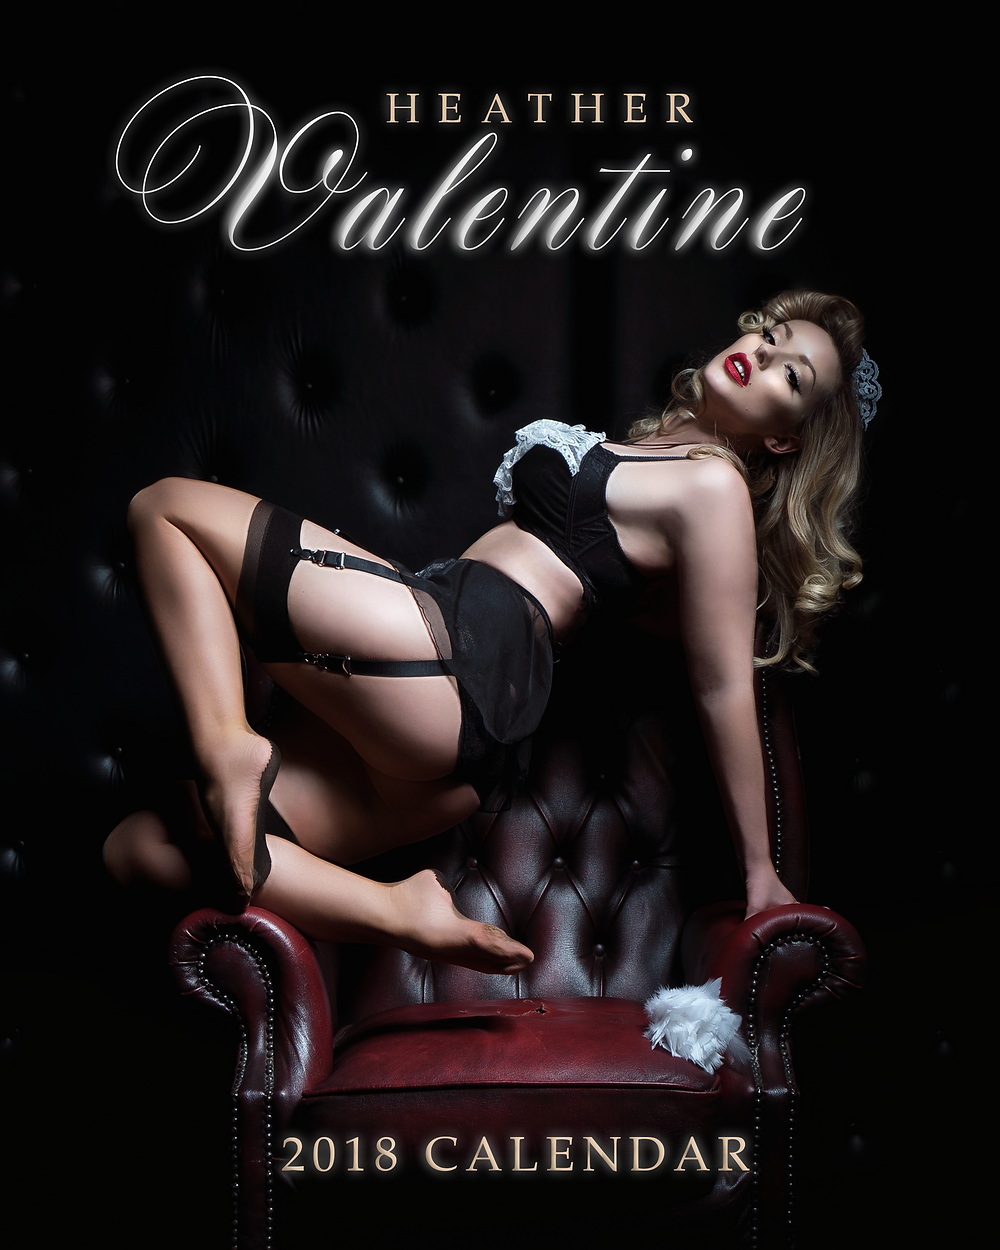 Heather Valentine 2018 Pinup Calendar Cover Image | World Famous Pin up Model